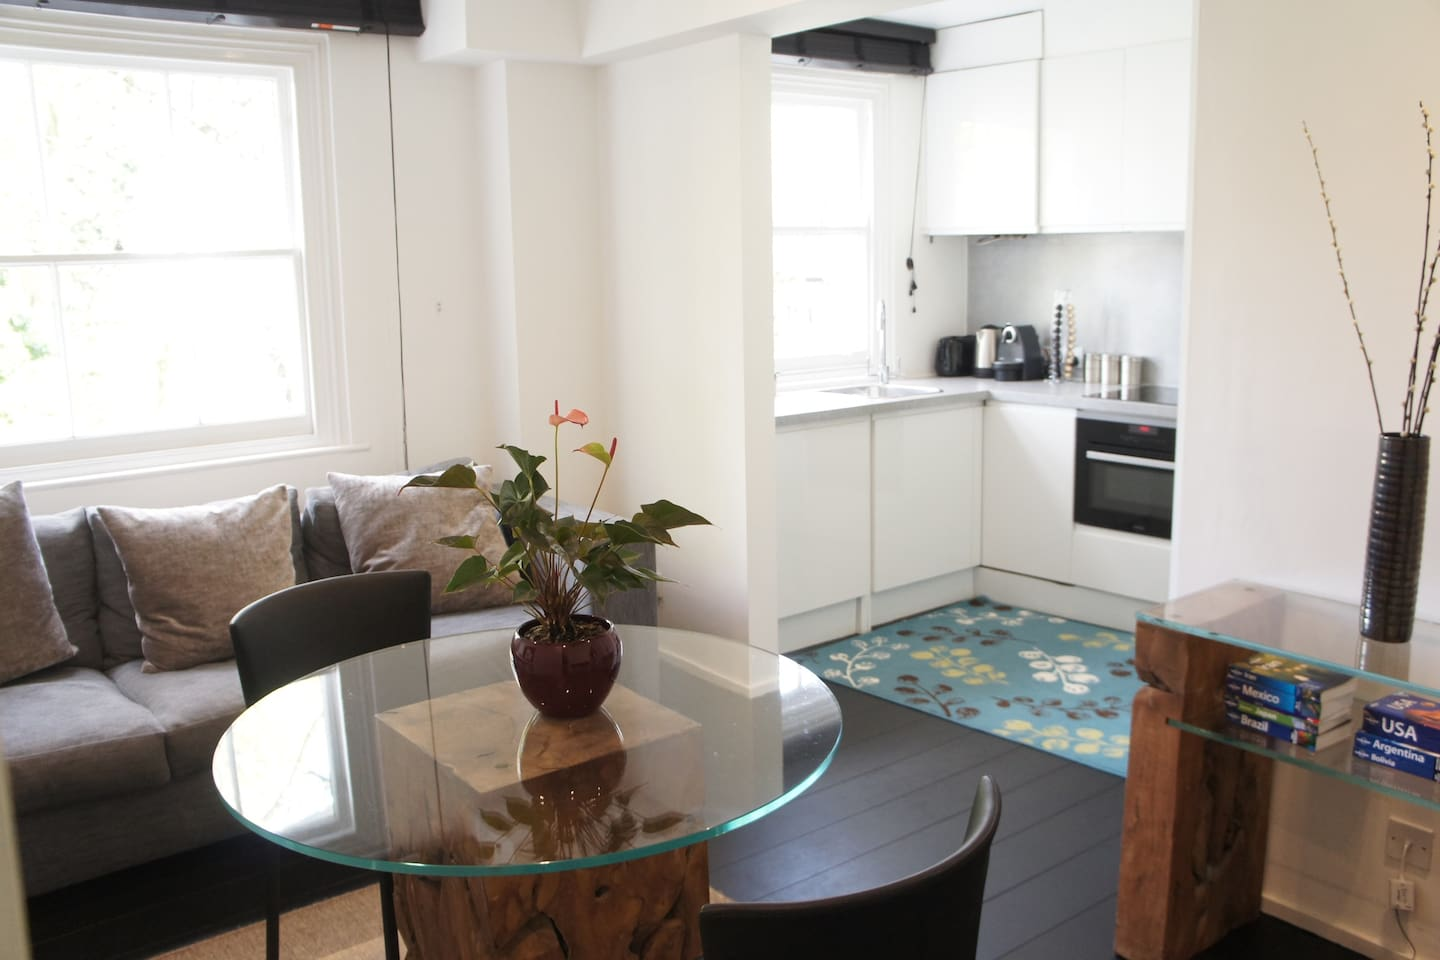 Modern and clean apartment in fantastic location.